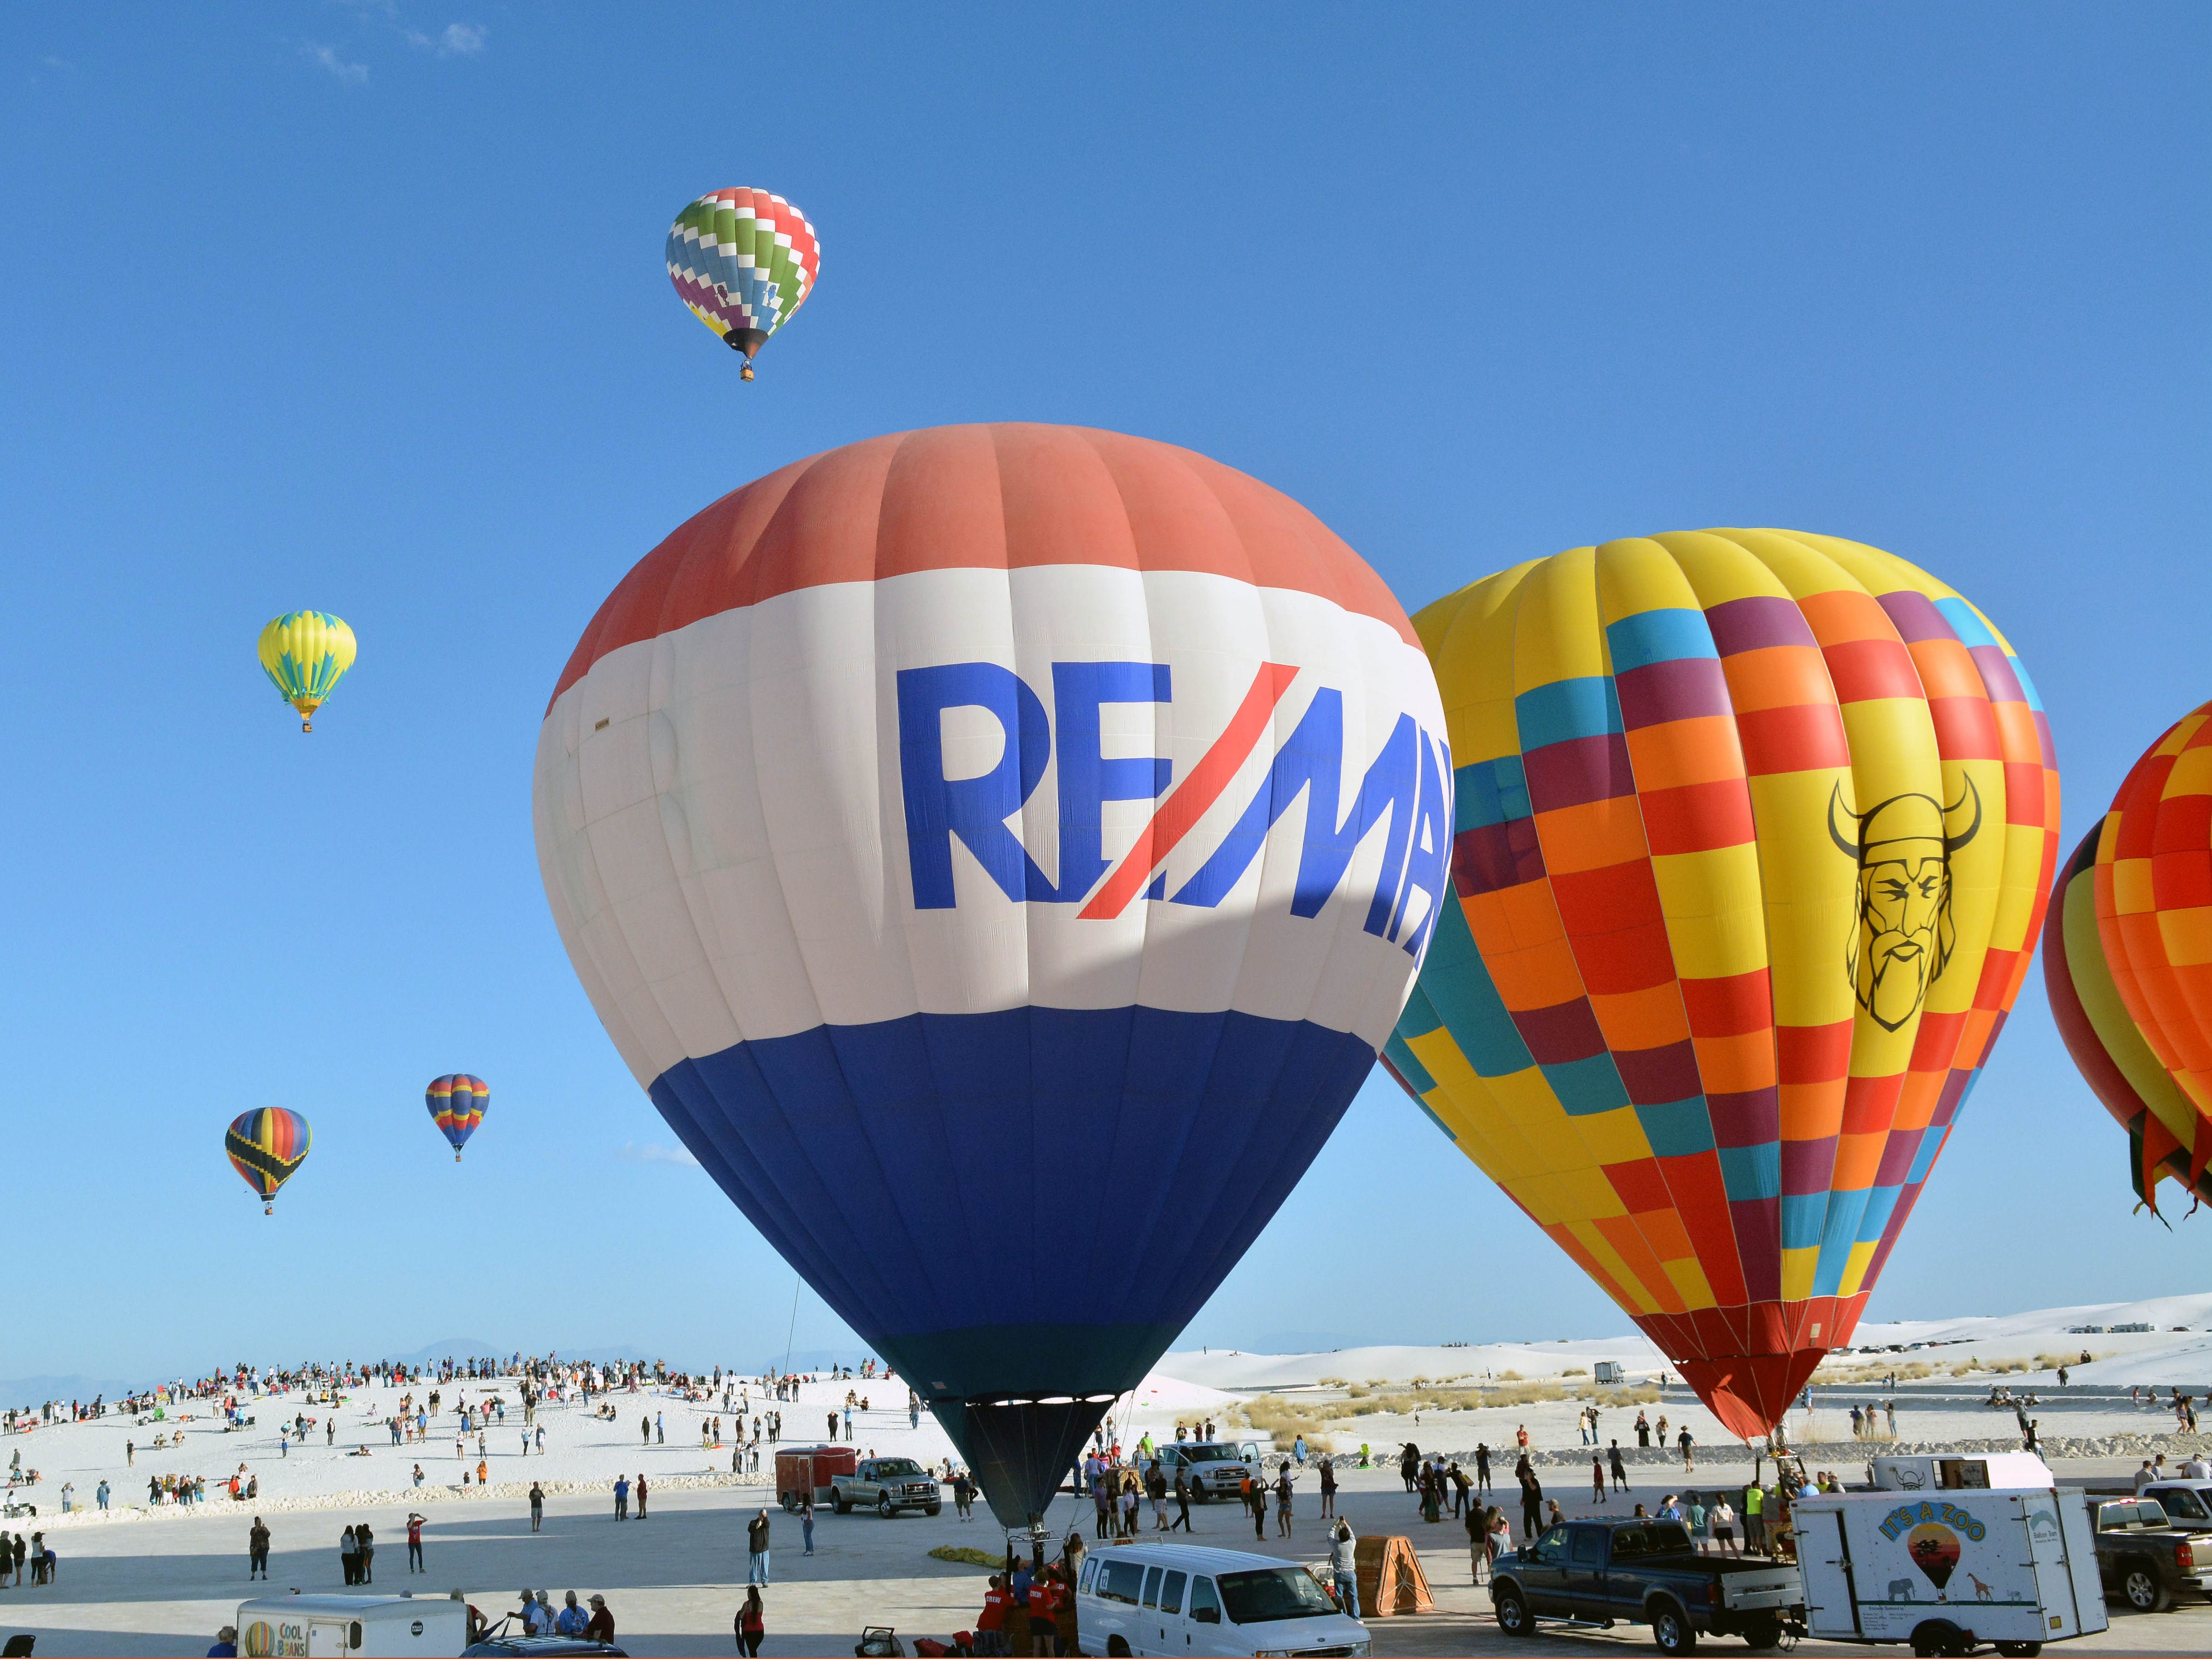 Hot air balloon begin to lift off Saturday, Sept. 15, 2018 at the White Sands Balloon Invitational.